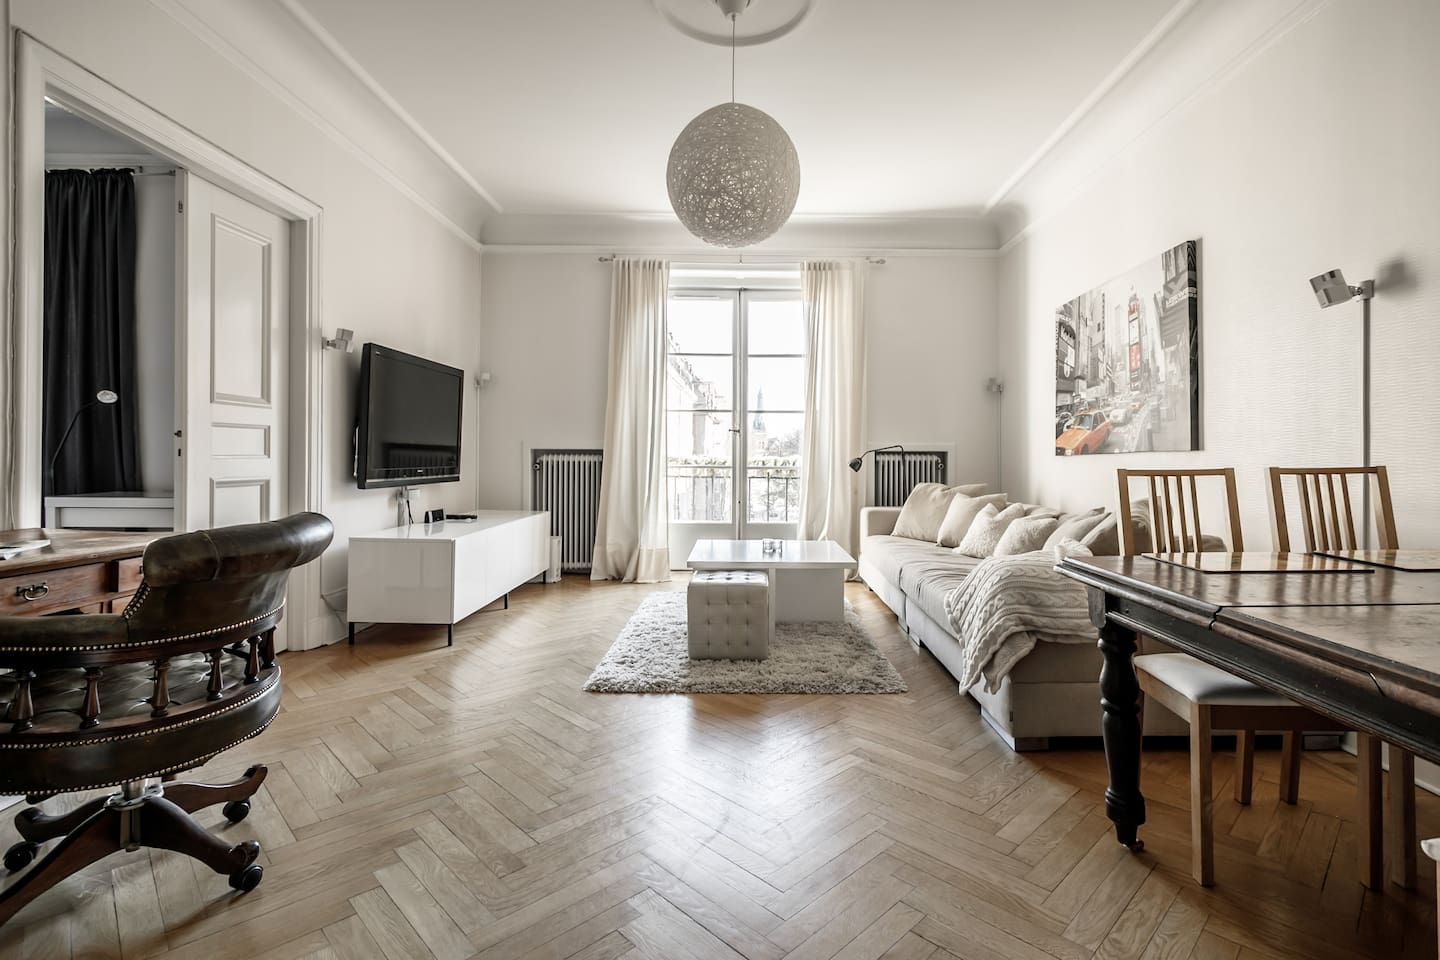 unwind in 2br turn of the century apt in Östermalm apartments for